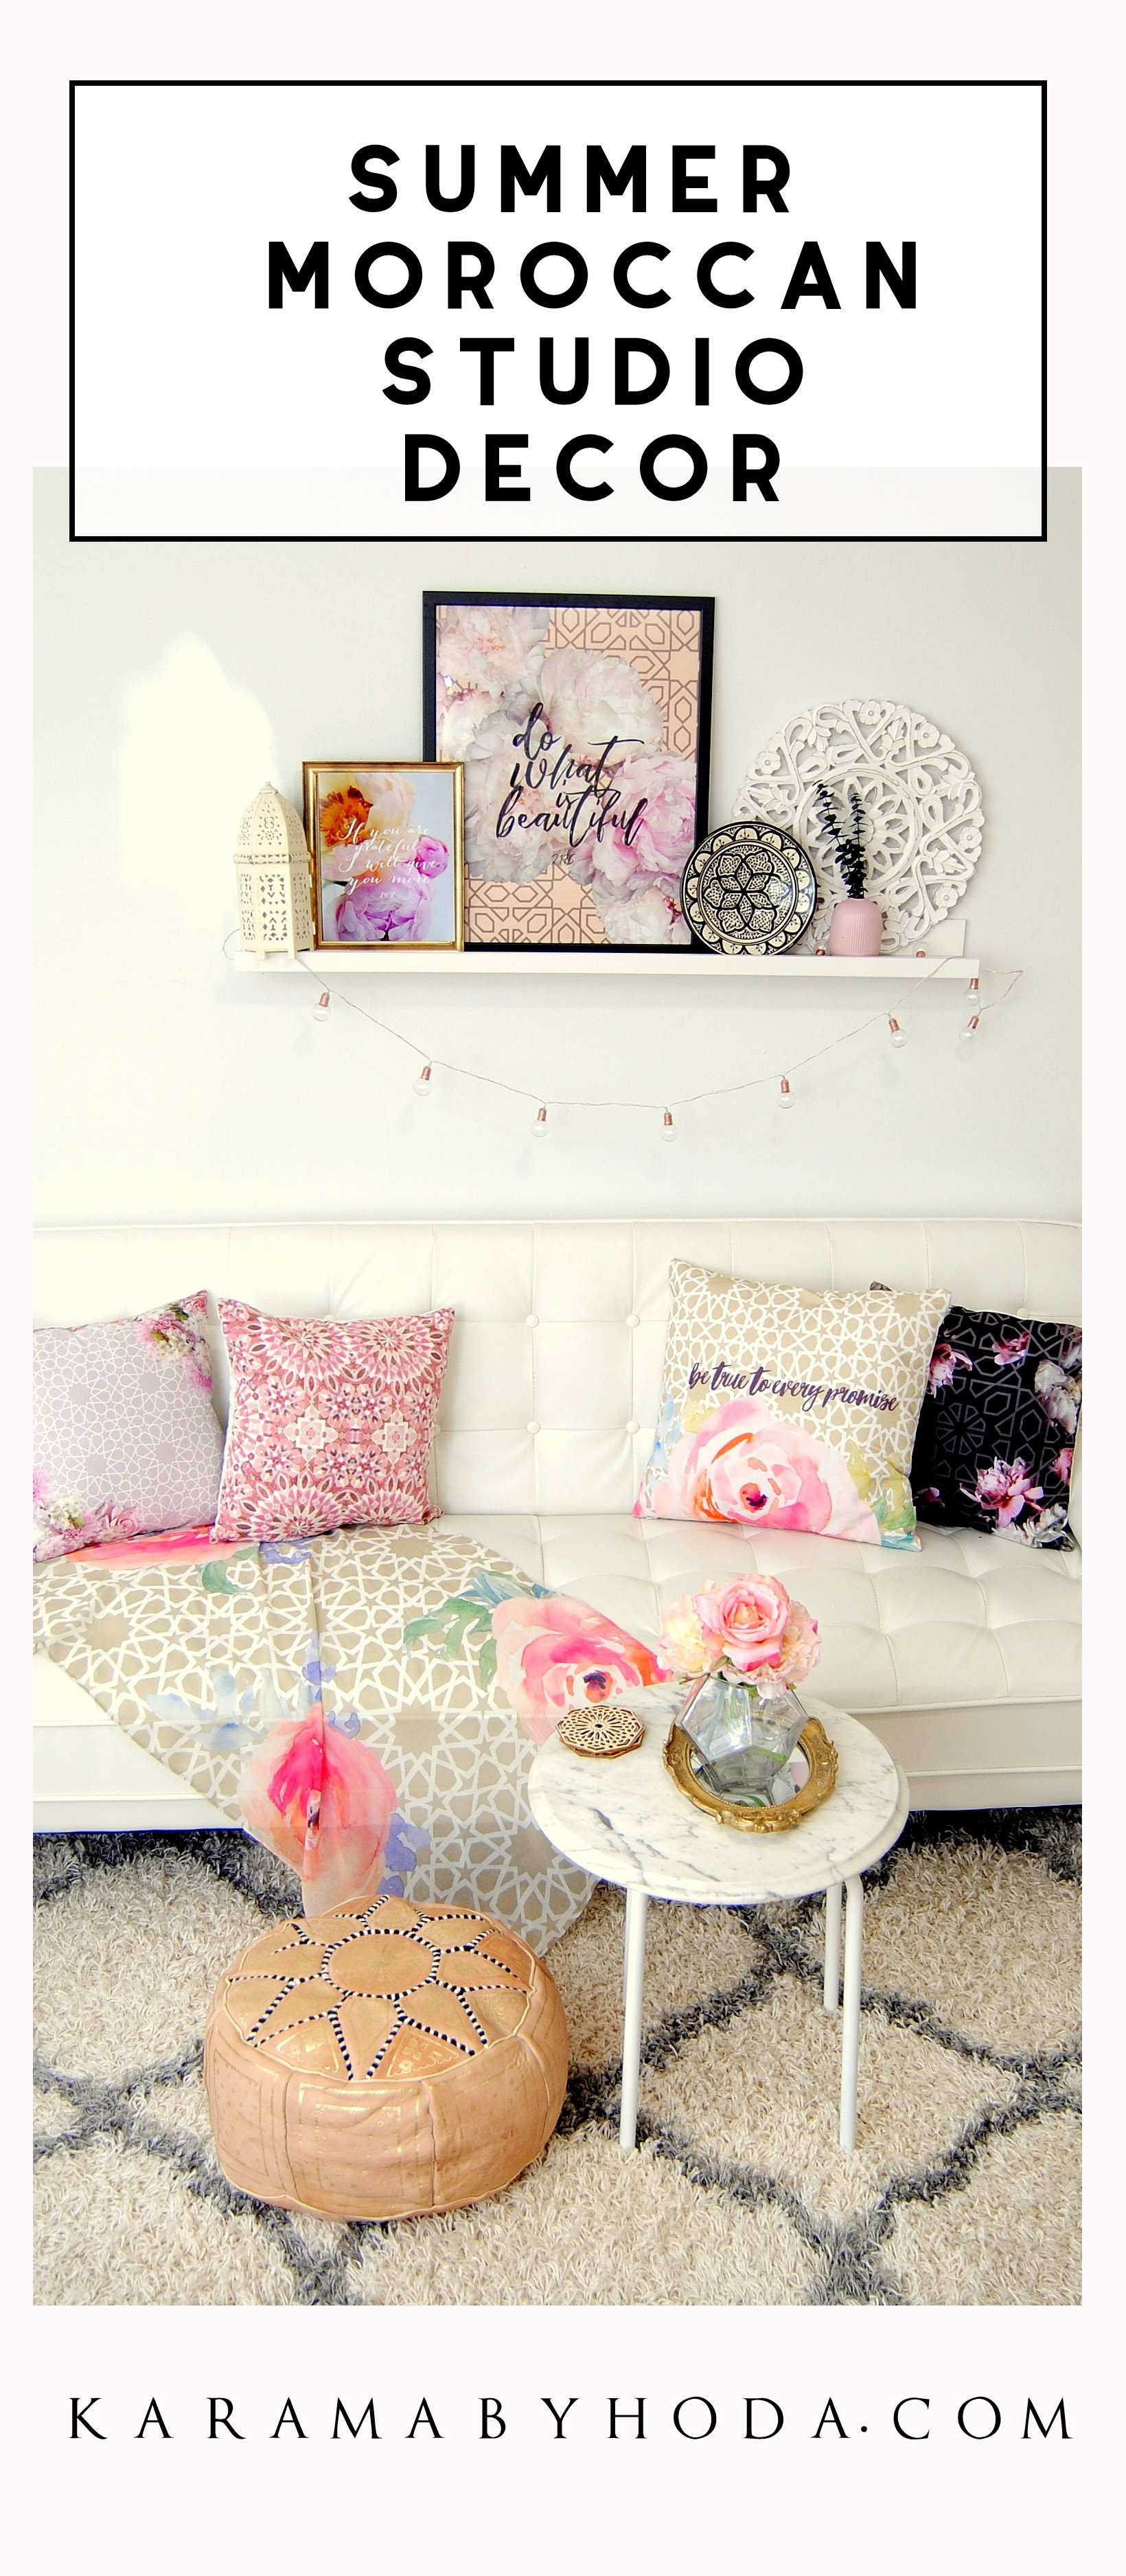 Summer Moroccan Studio Decor - Karama by Hoda.jpg